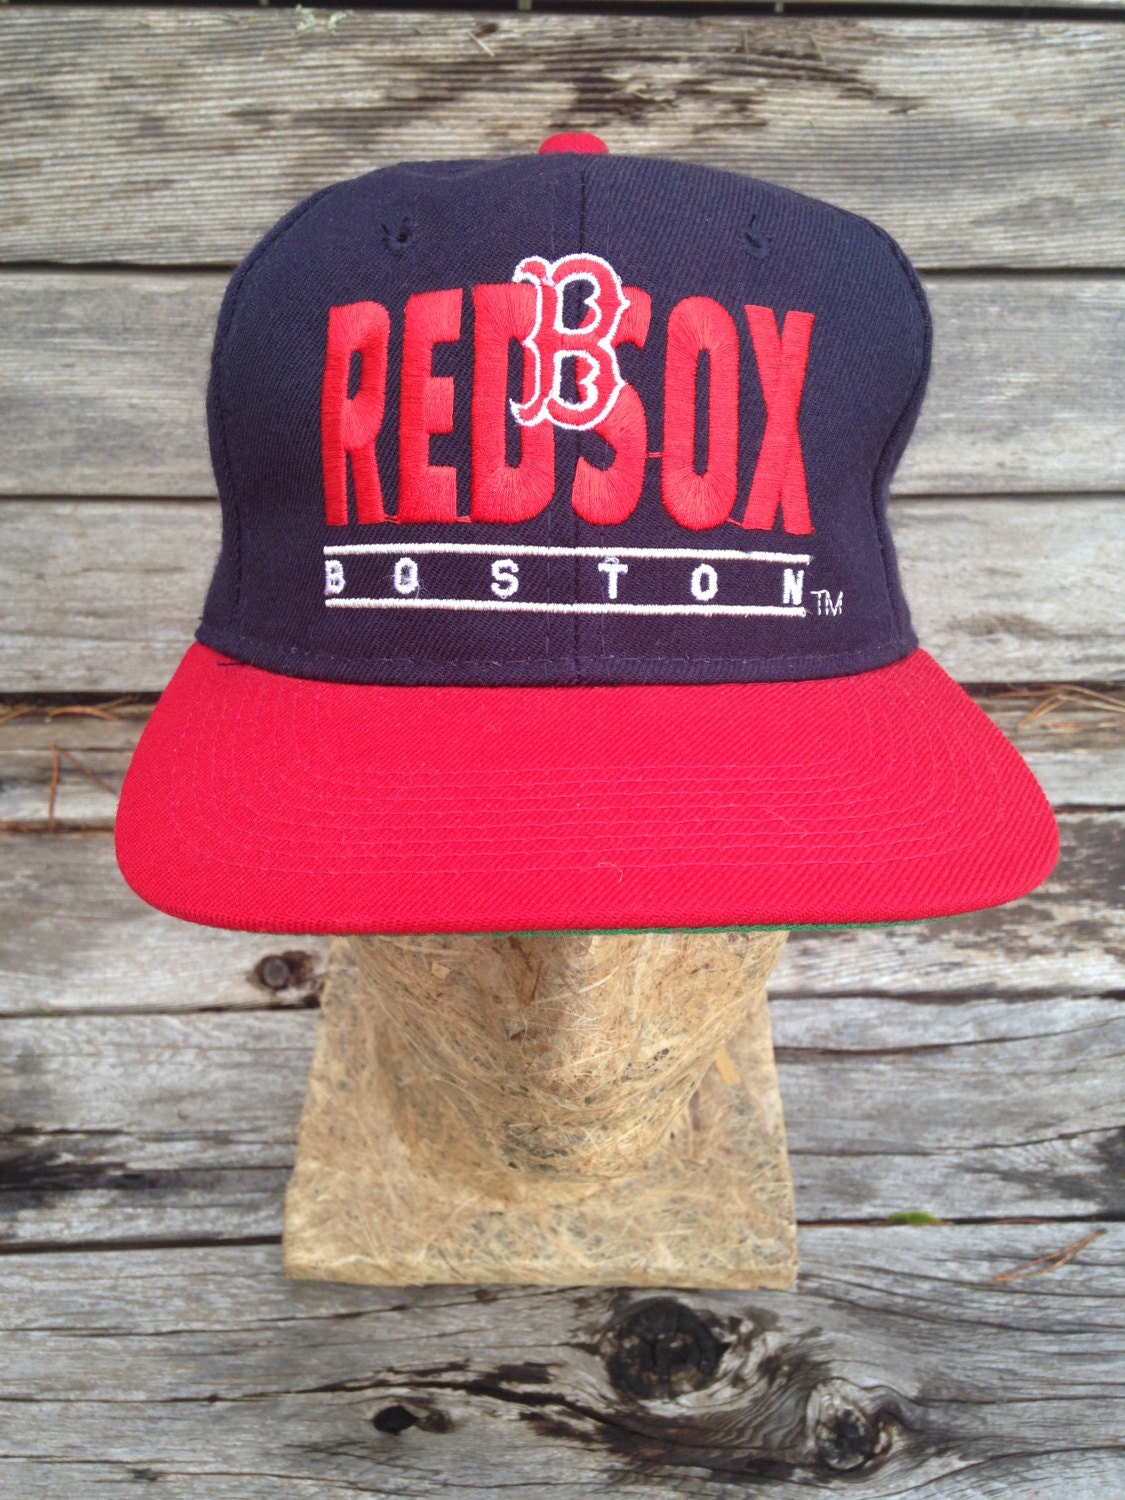 4b19b1e7721c0 ... italy vintage deadstock 90s boston red sox snapback hat one size nwot  32c91 8be5c